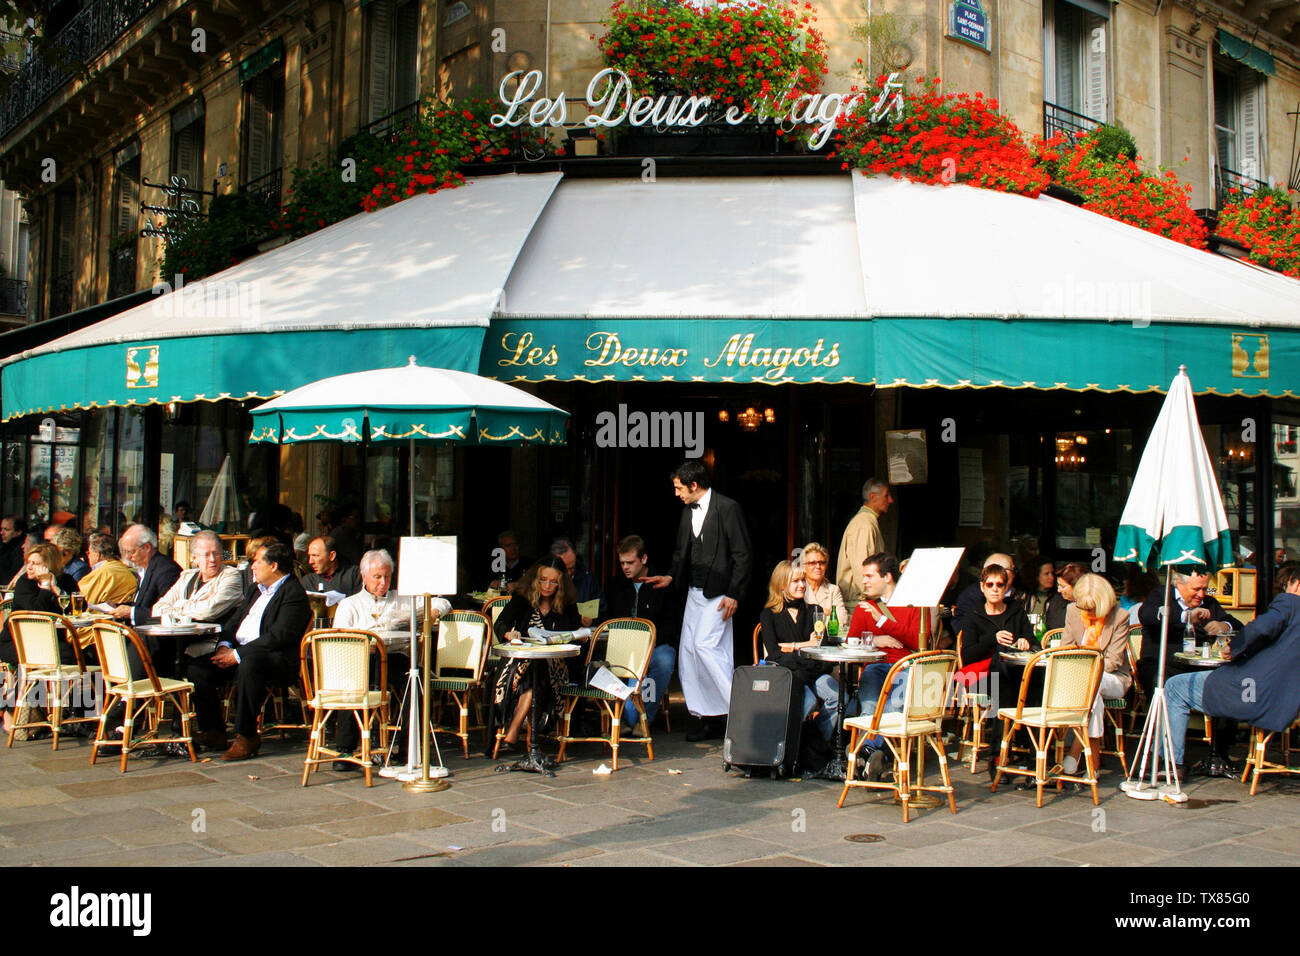 'English: Café les deux magots Paris 6ème , France. Author: Robyn Lee (user roboppy) Date: October 16, 2006 URL: https://www.flickr.com/photos/roboppy/271275631/ Uploaded by author; 21 October 2006 (original upload date); Transferred from en.wikipedia to Commons by Pline using CommonsHelper.; Roboppy at English Wikipedia; ' - Stock Image